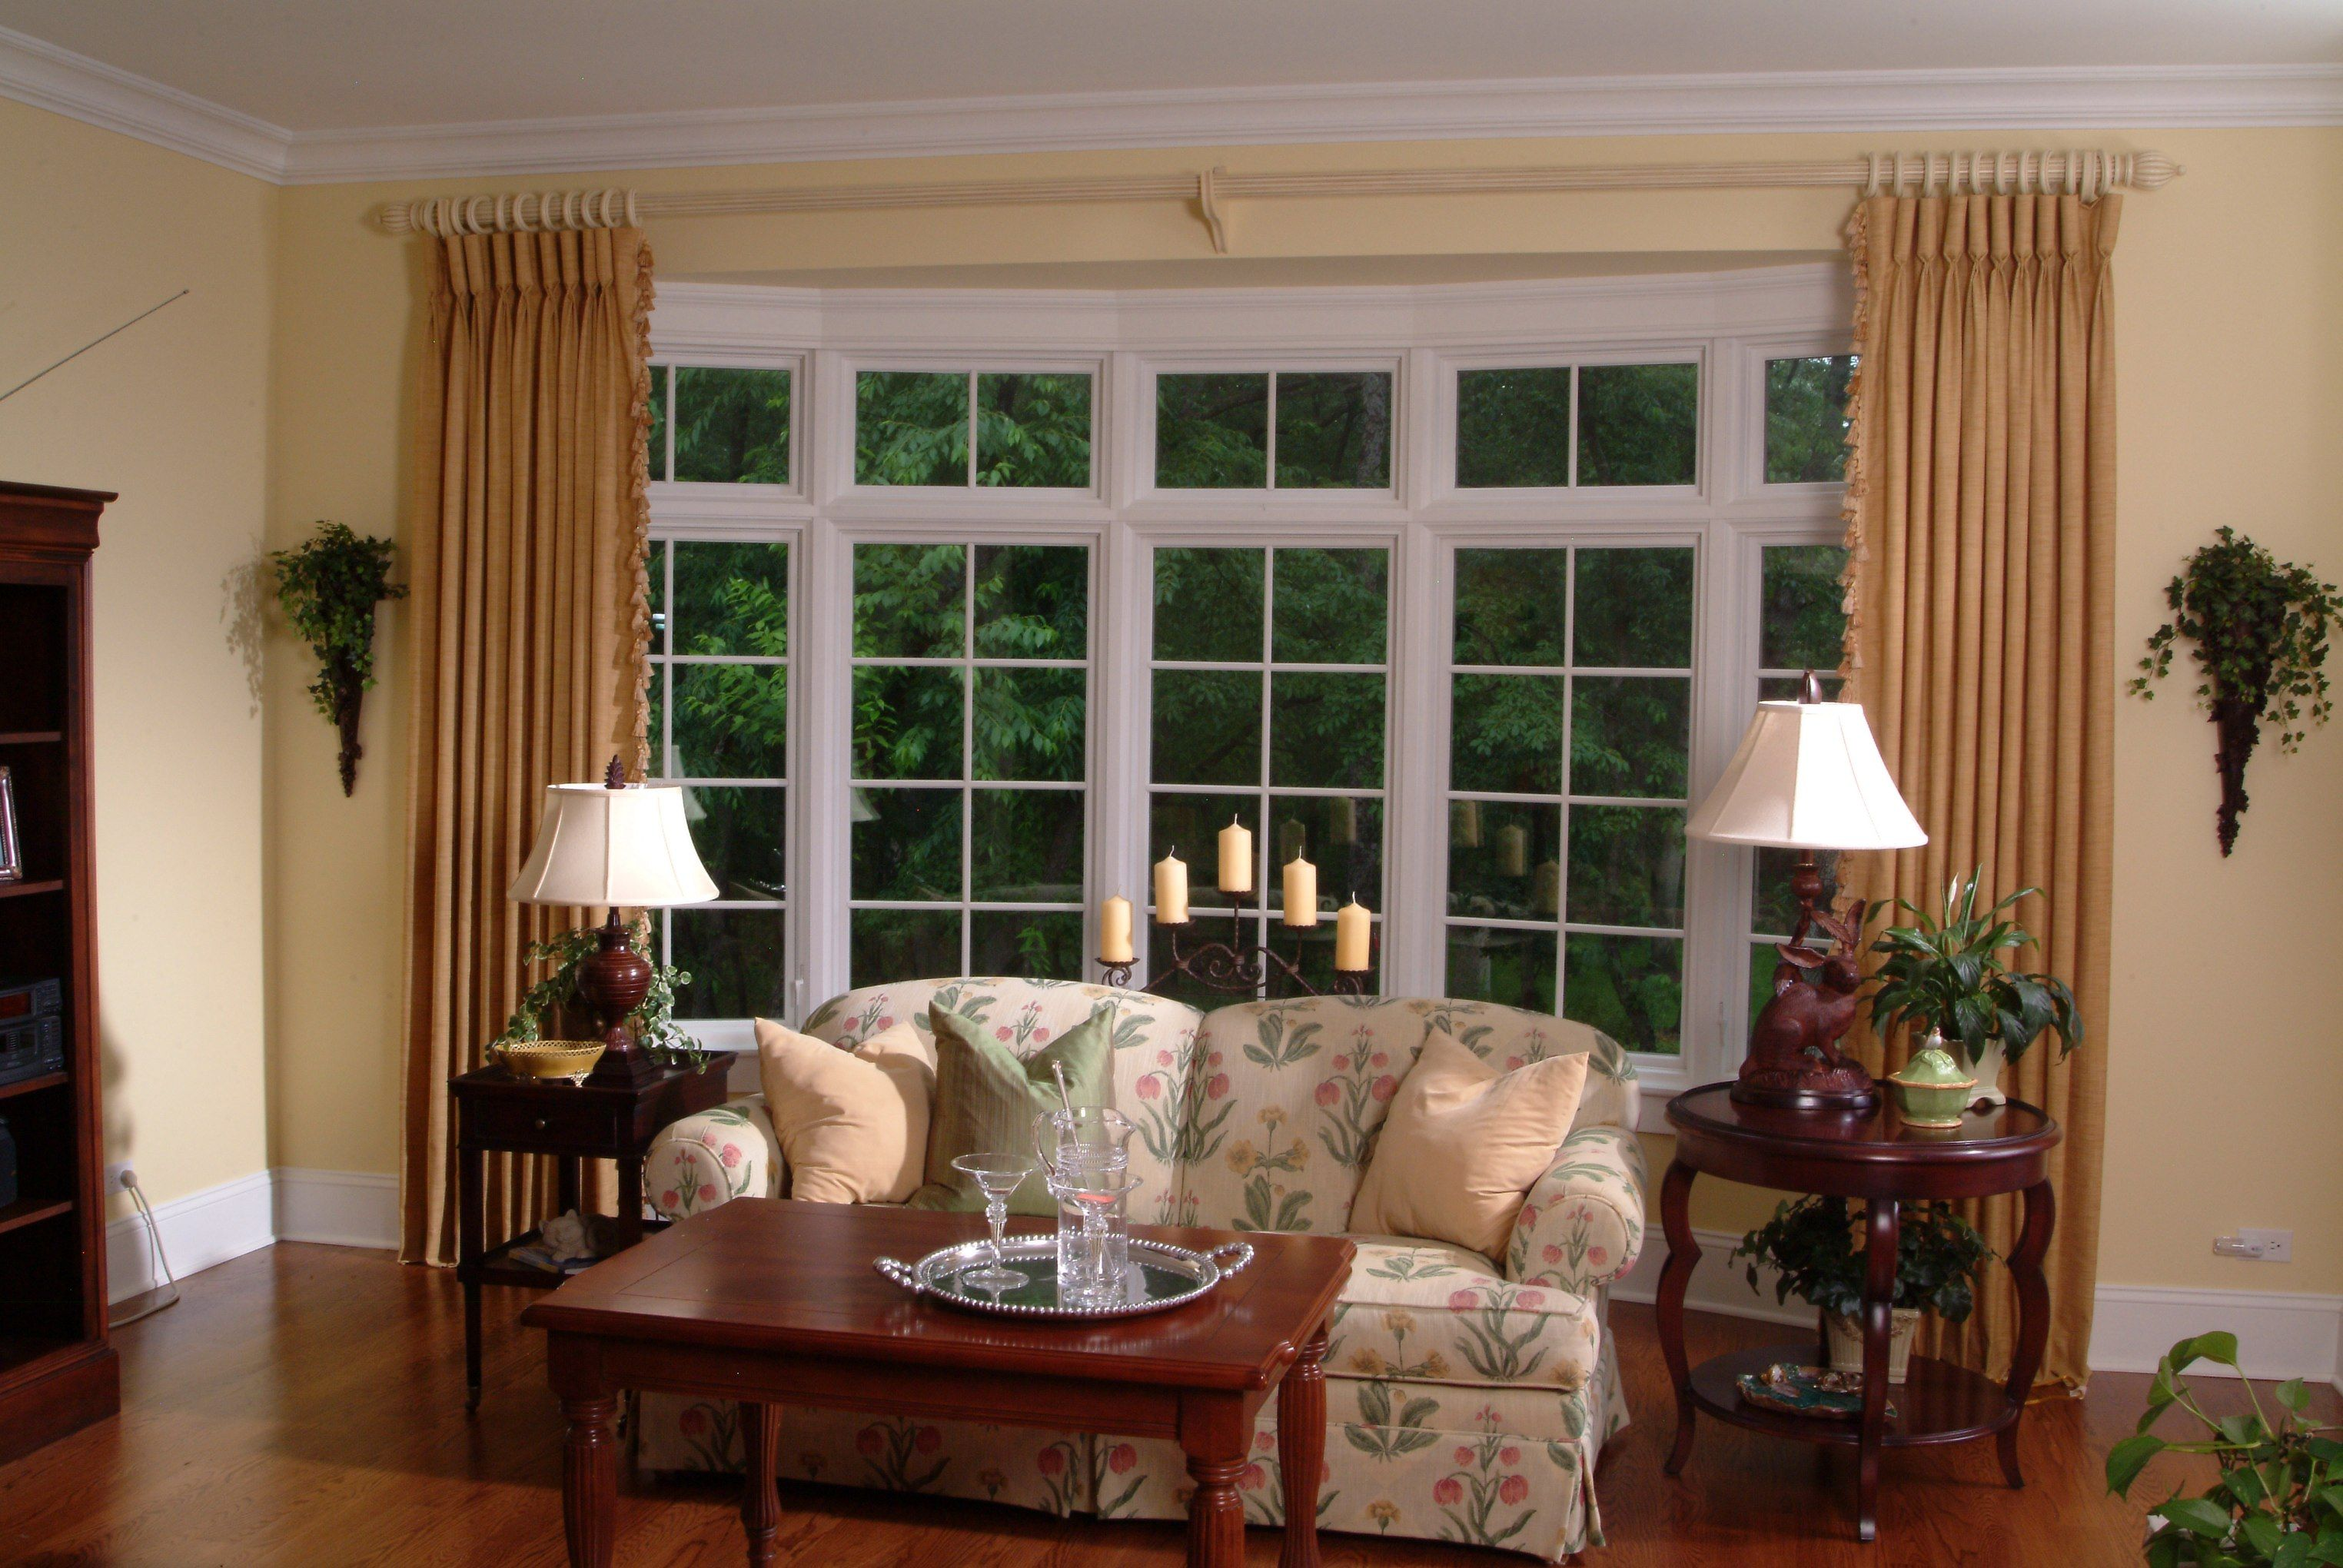 Decoration how to decorate a bay window ideas decorating bay cream